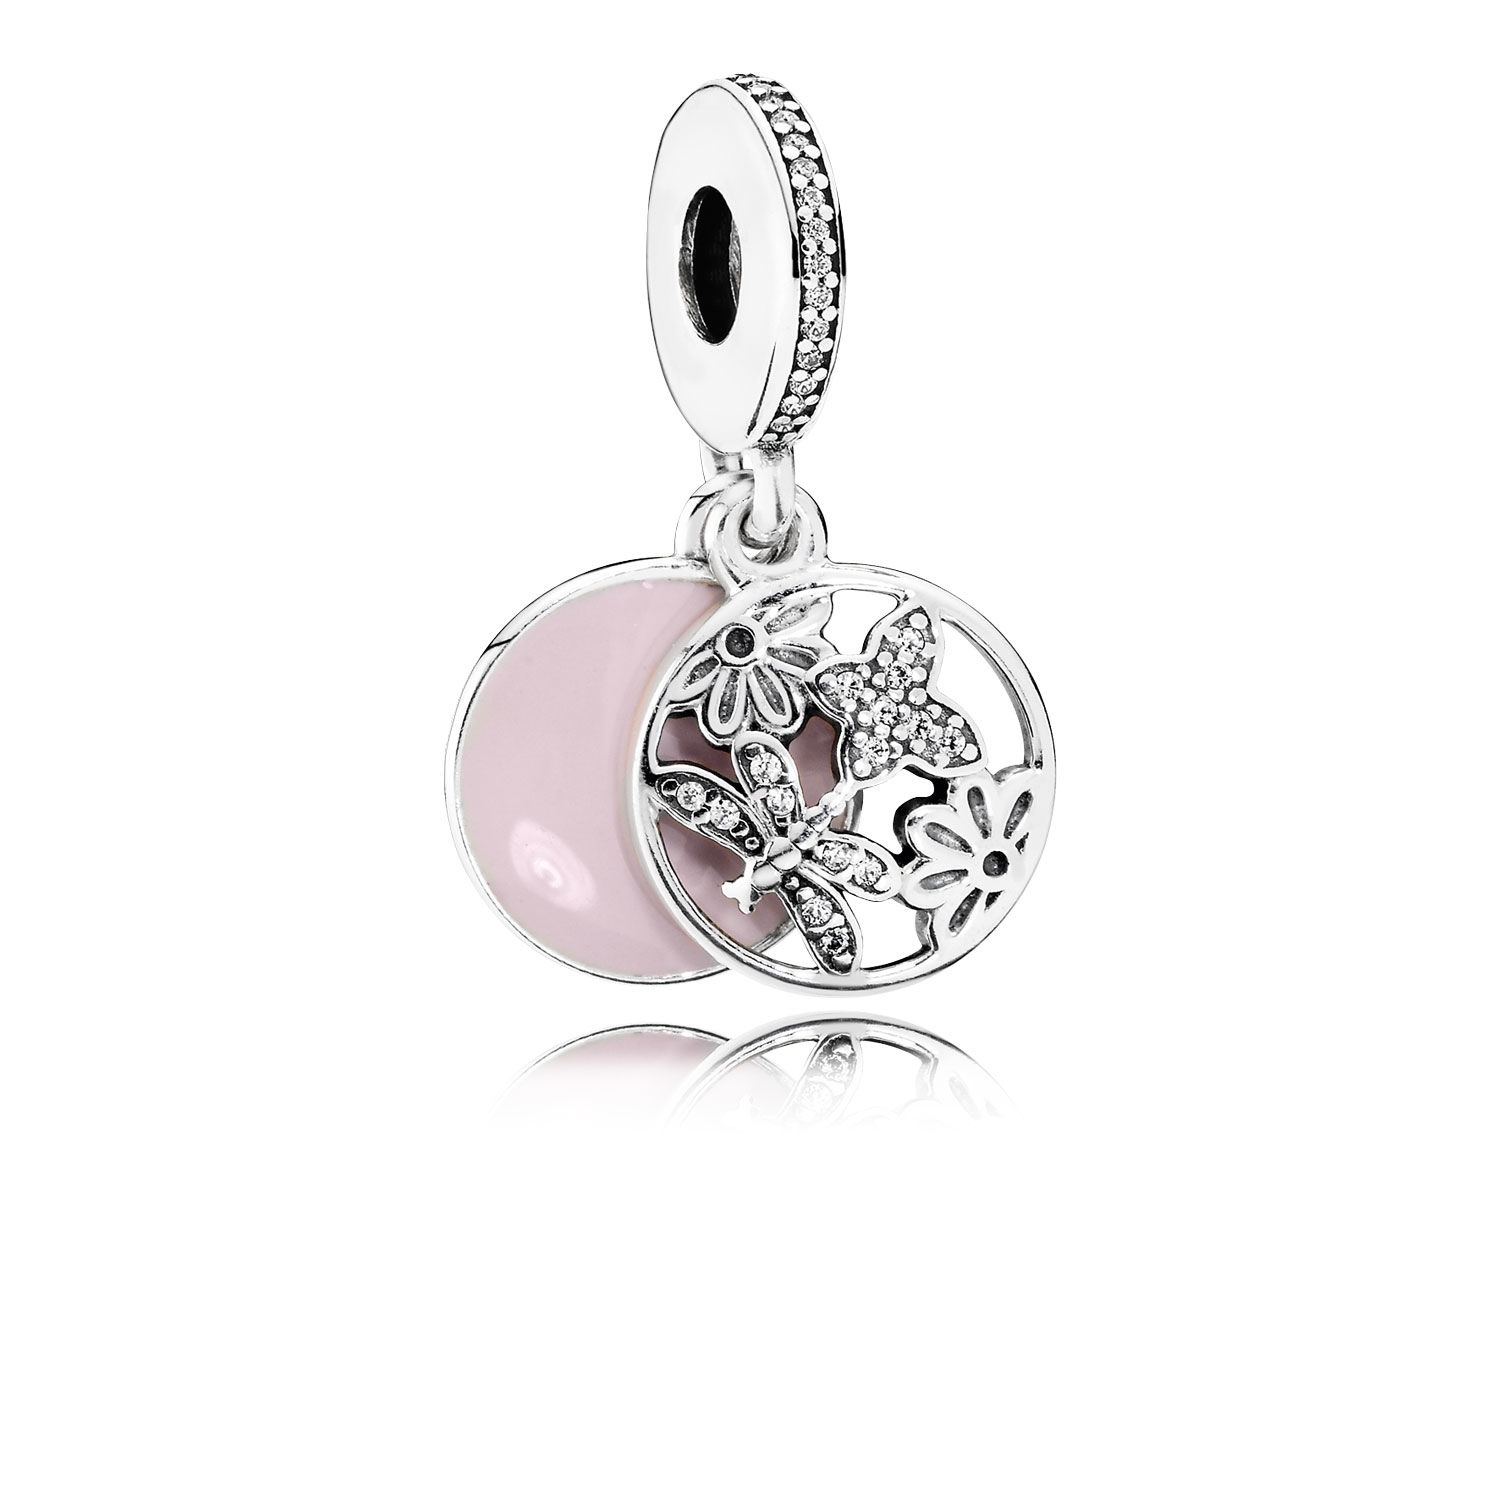 Pandora Springtime Dangle Charm, Soft Pink Enamel & Clear CZ 791